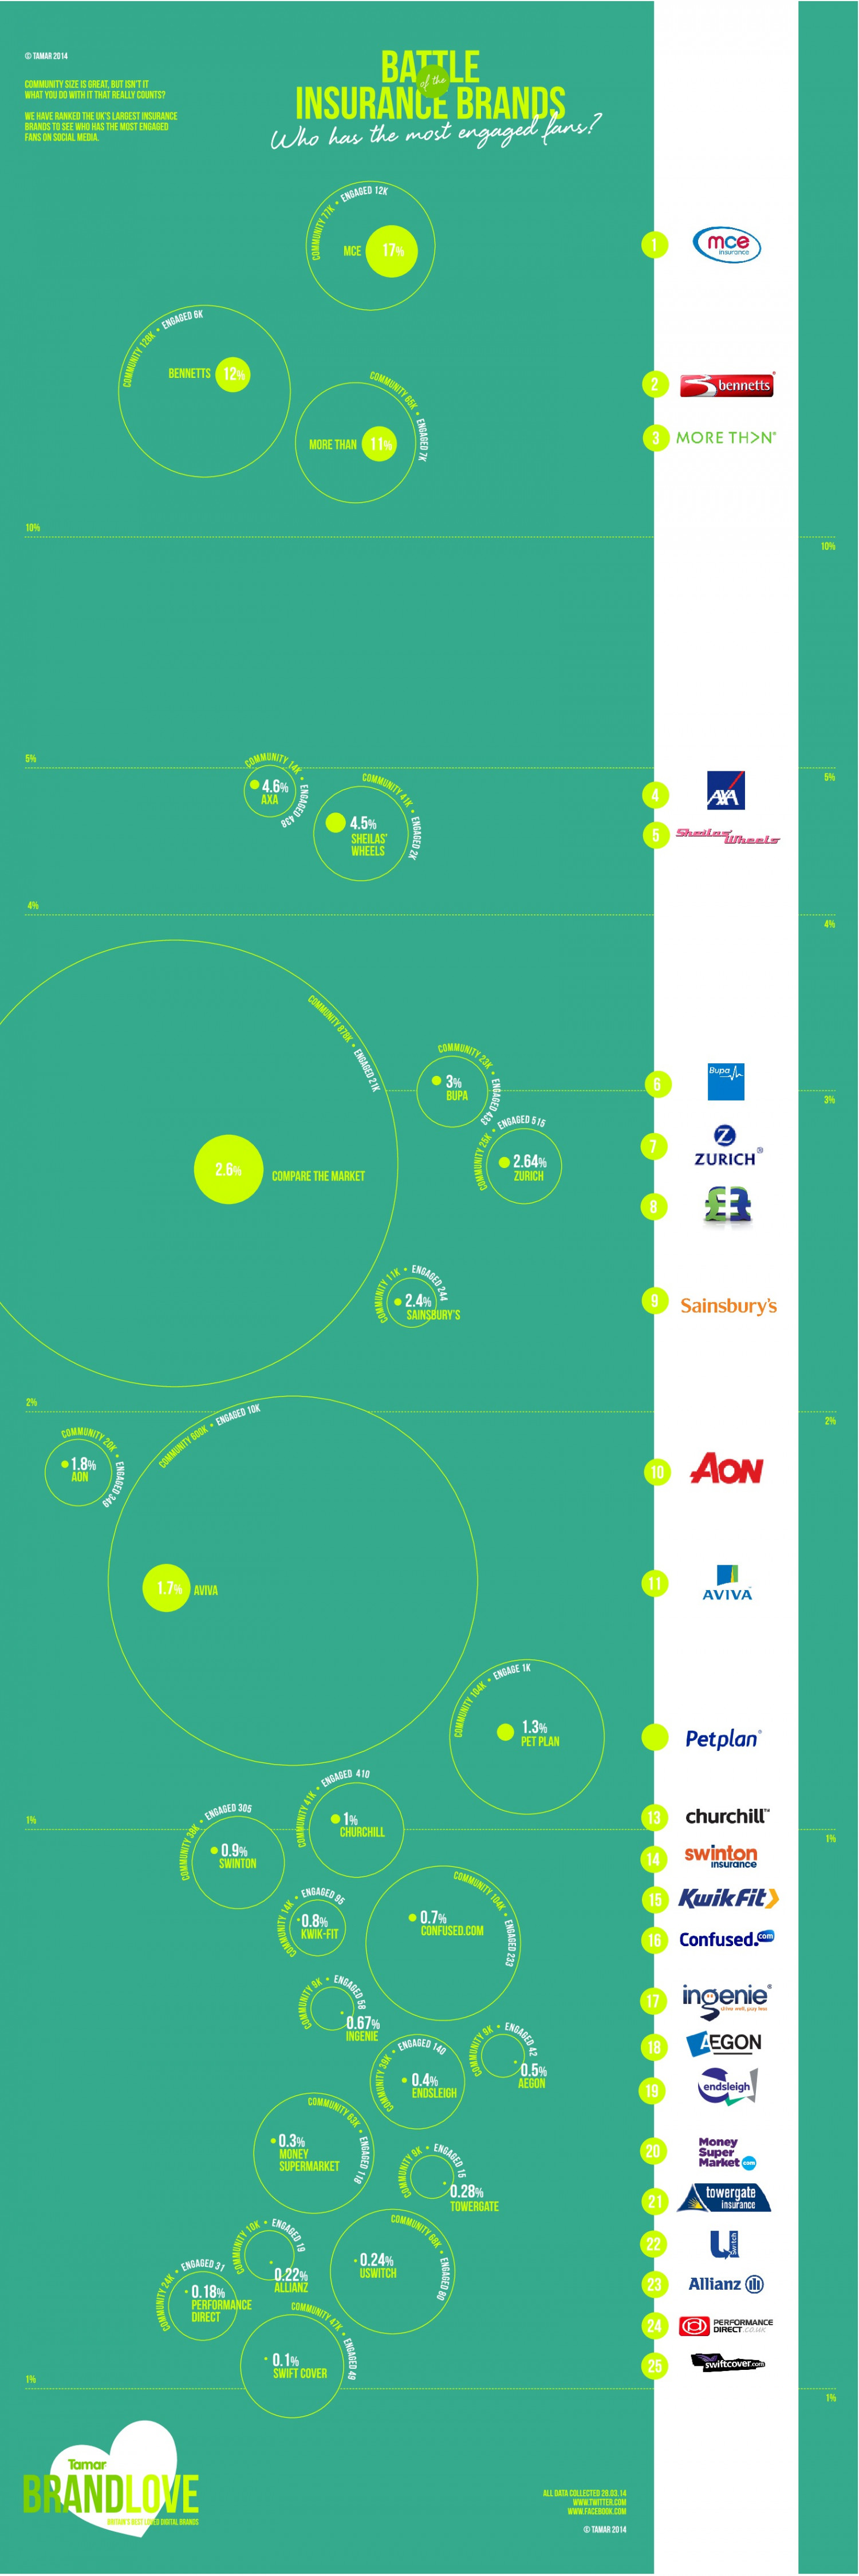 Battle of the Insurance Brands Infographic